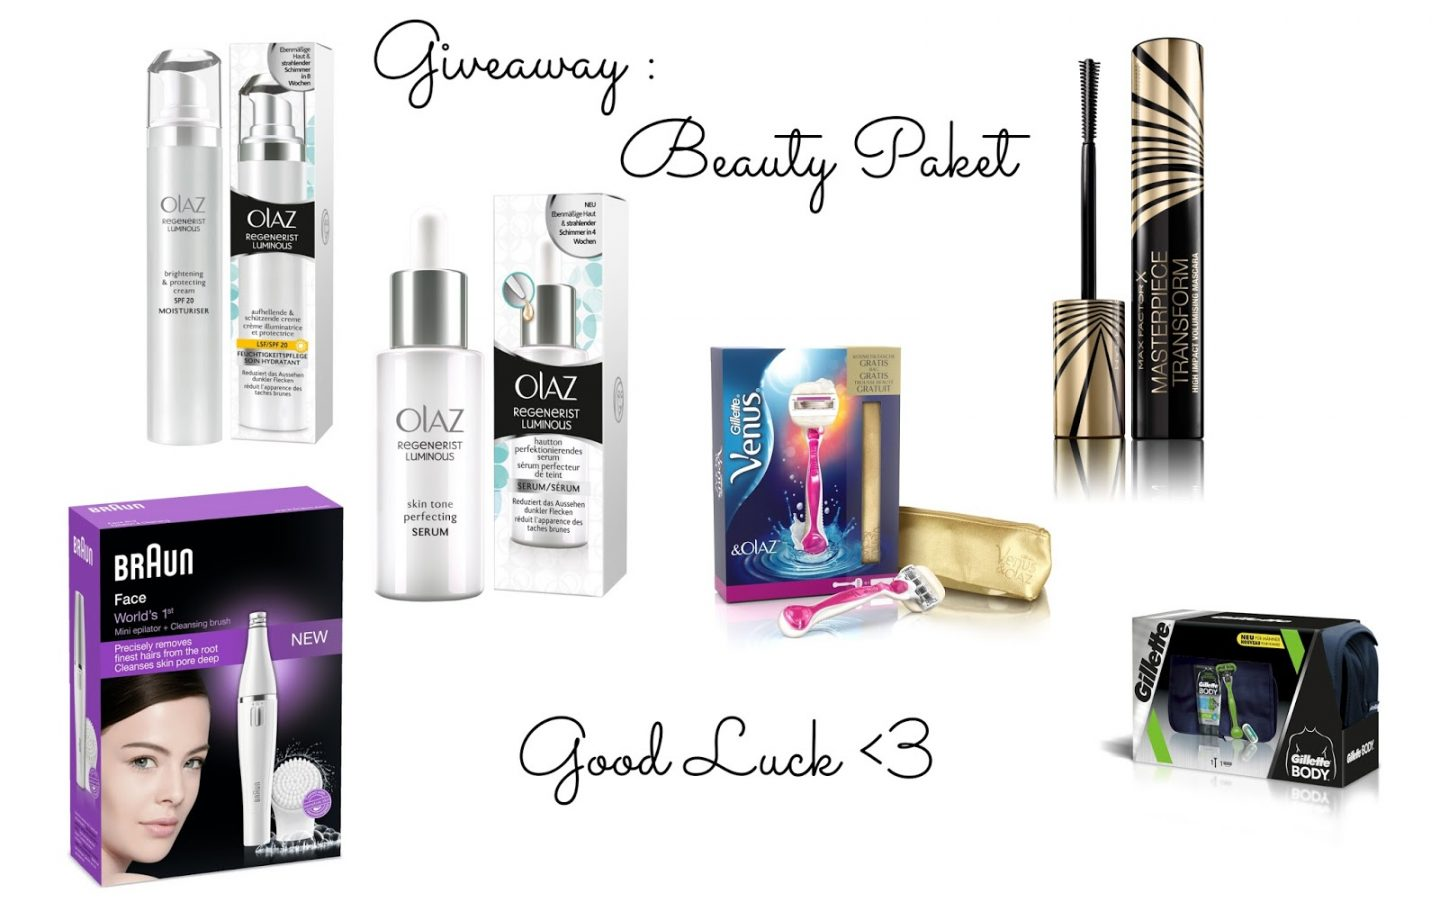 ADVENTS-GIVEAWAY: BEAUTY PAKET